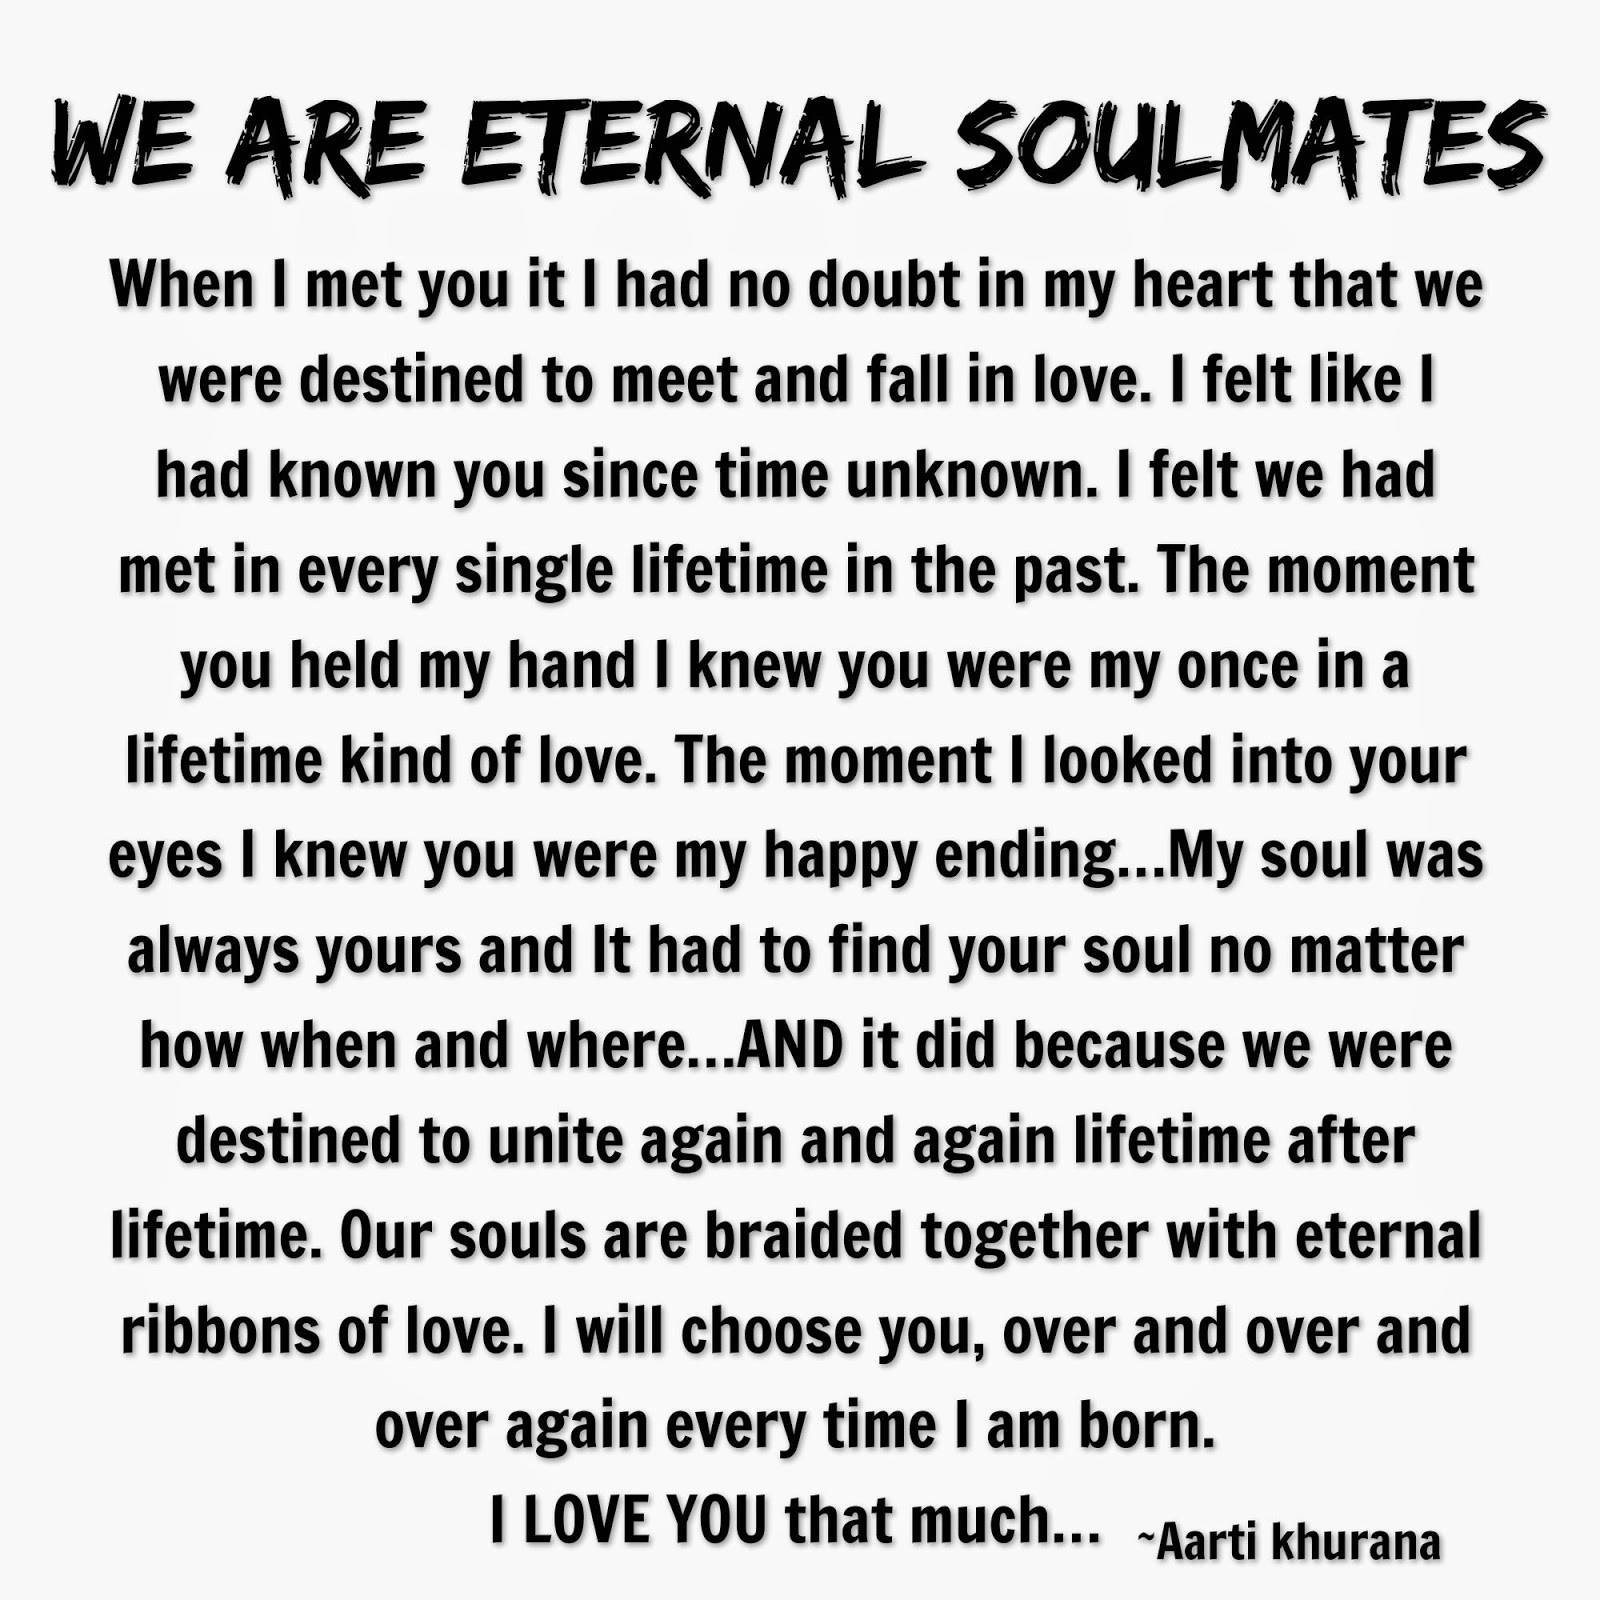 Love Is Eternal Quotes Eternal Soul Mate Quote  Inspiring Quotes And Words In Life